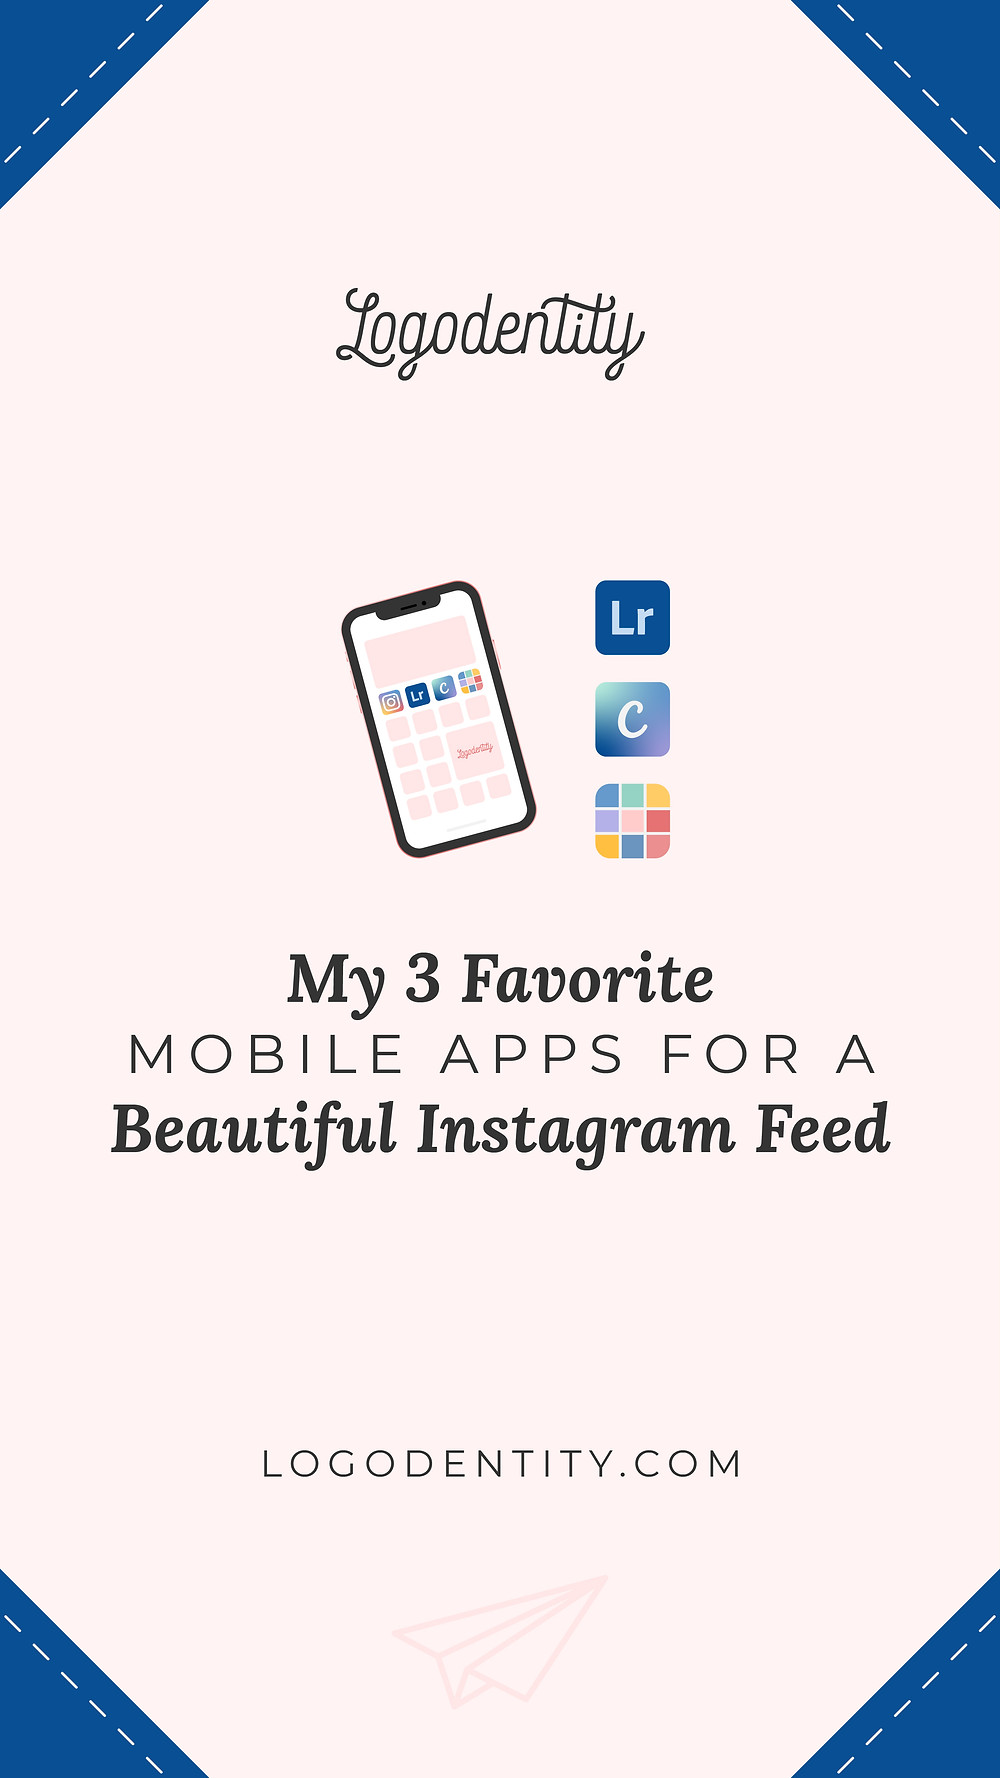 Mobile Apps for a Beautiful Instagram Feed